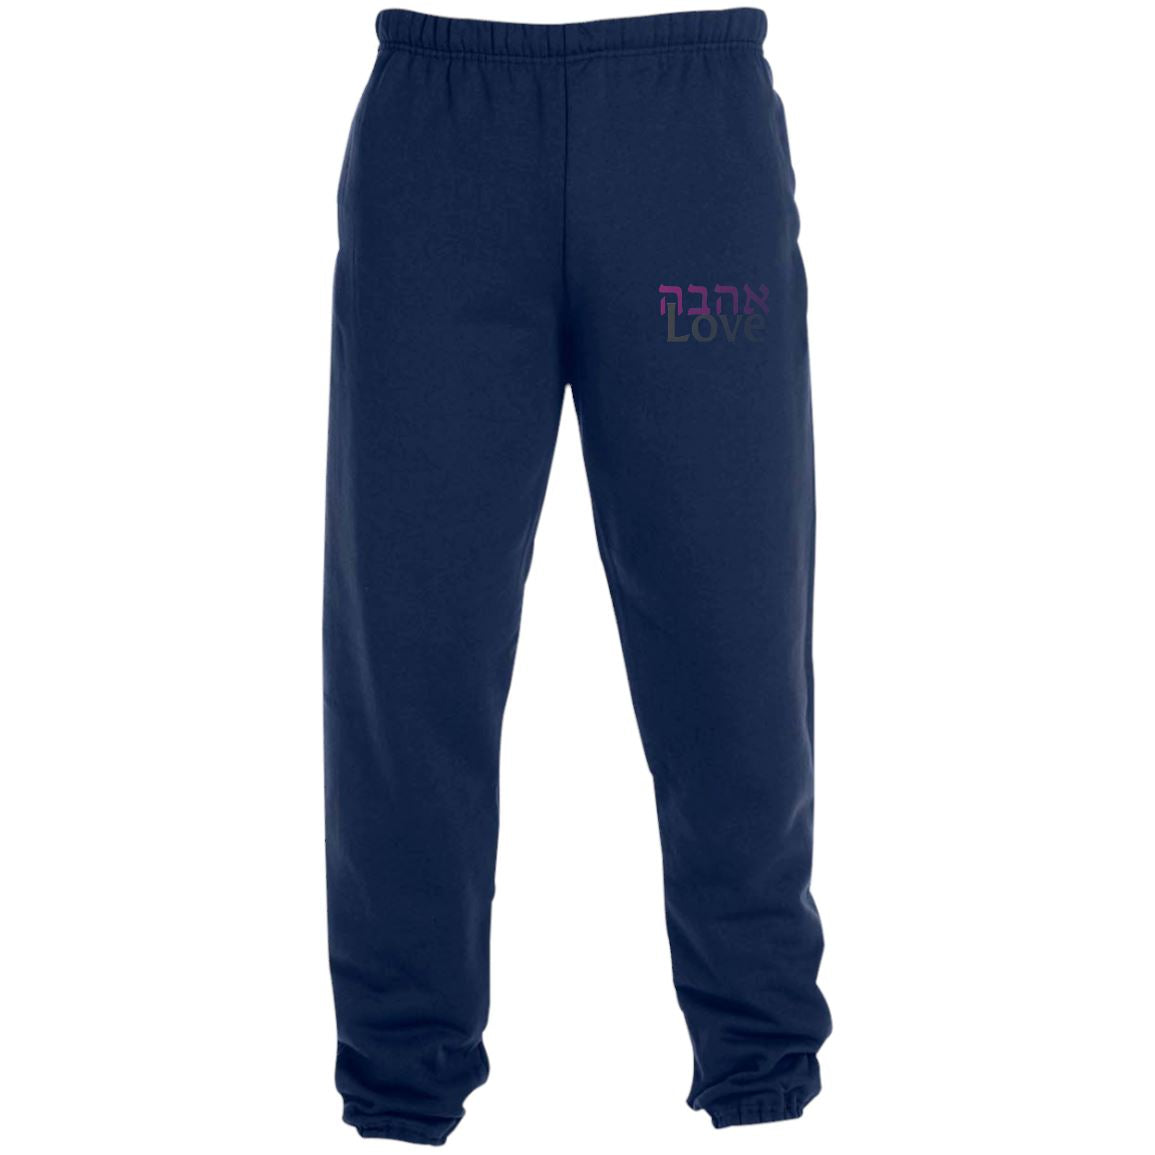 Hebrew Love Sweatpants with Pockets Pants Black S